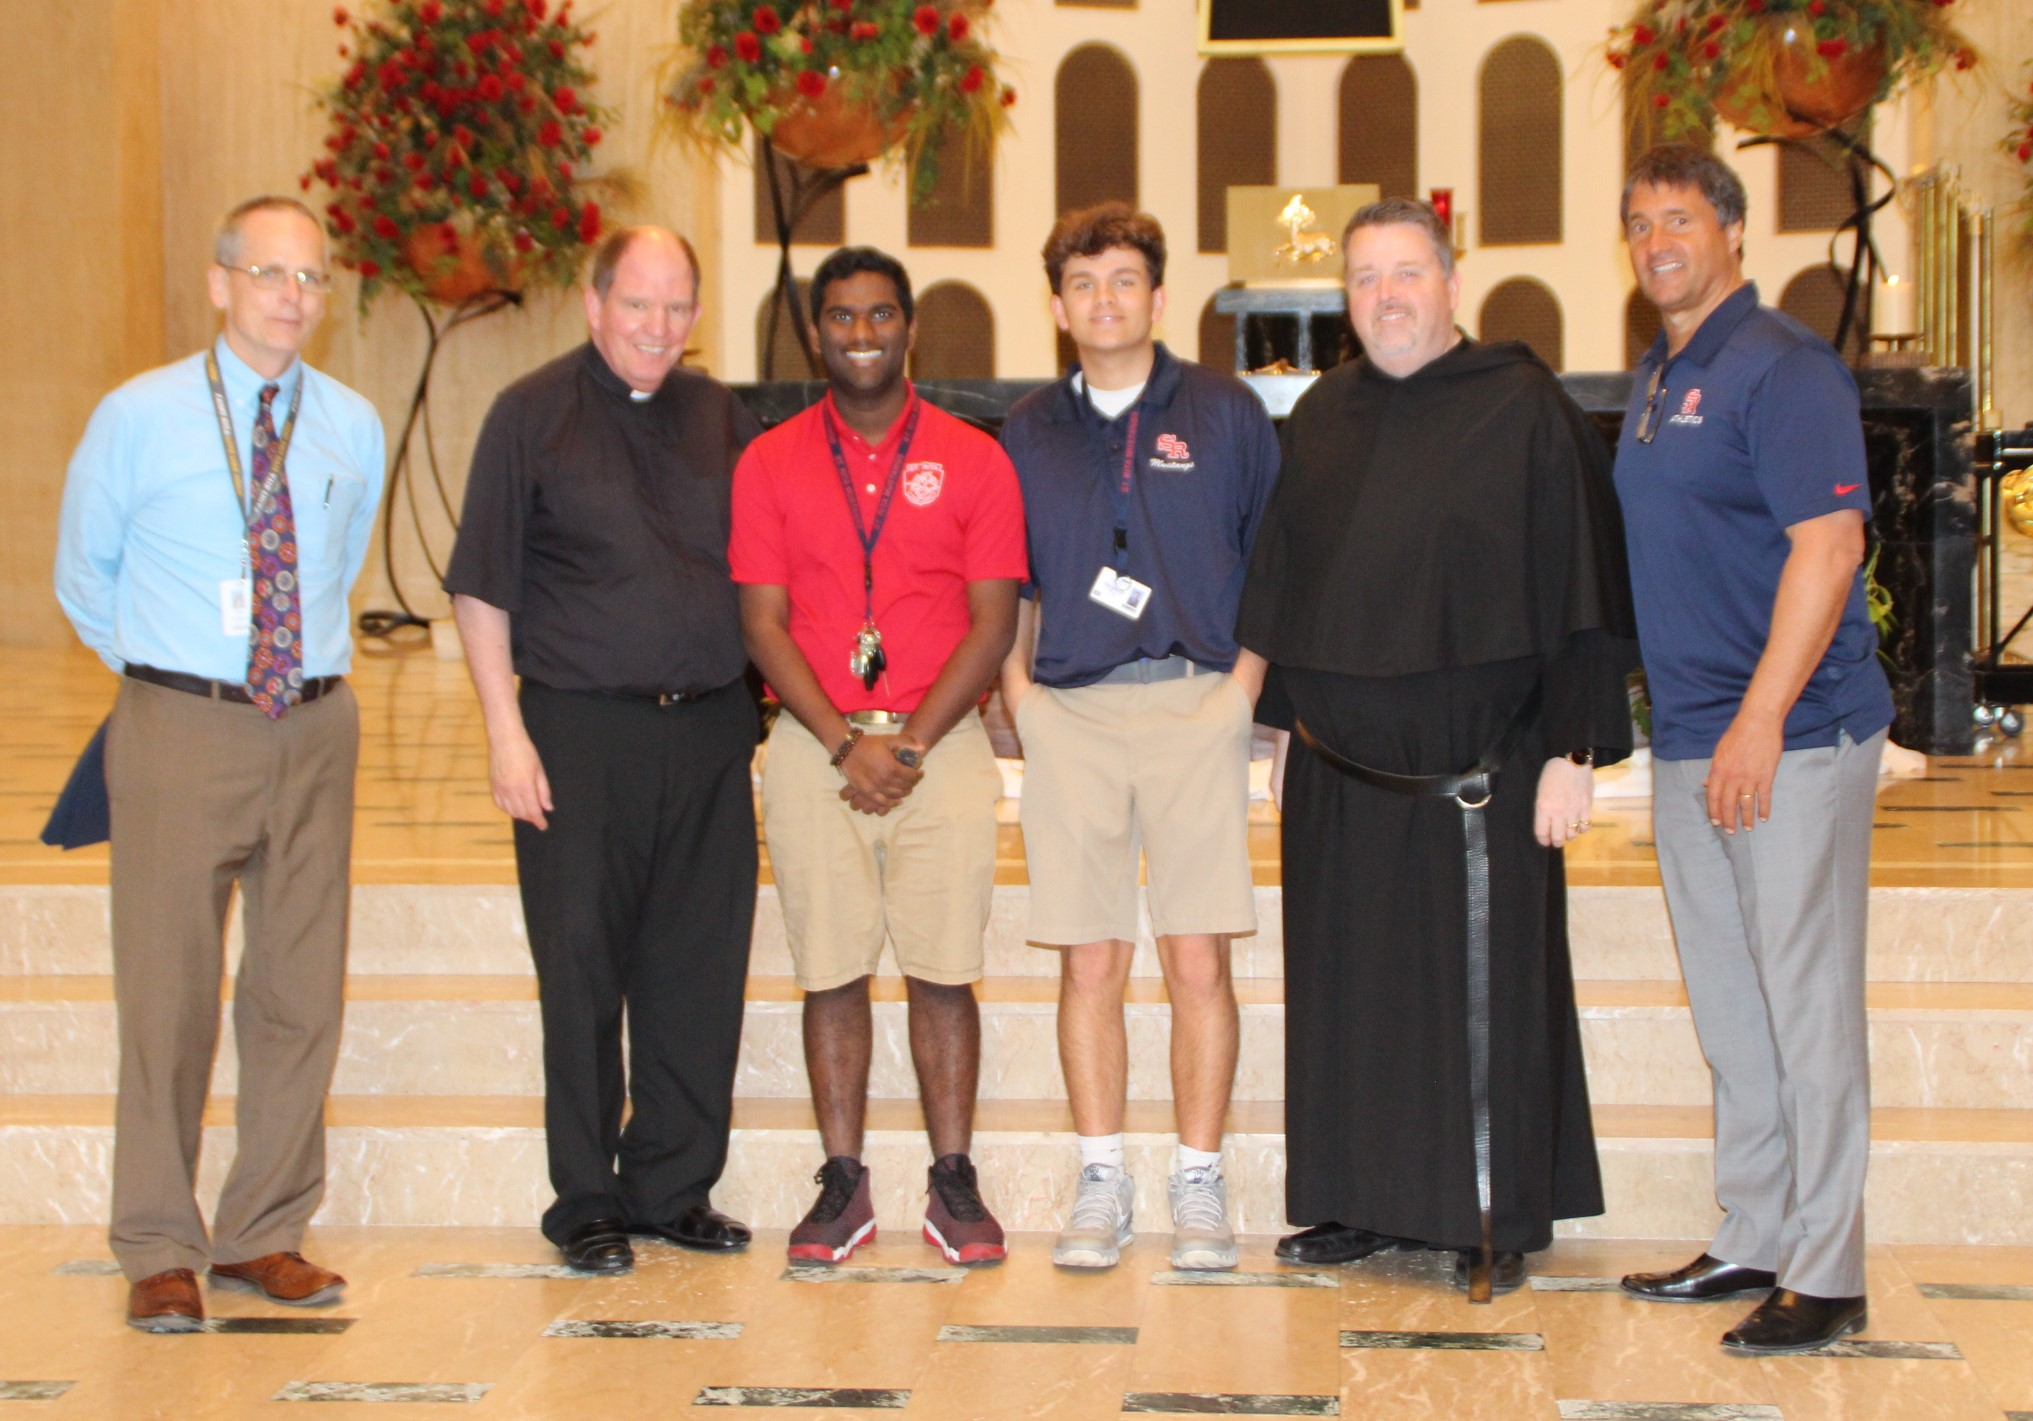 The  Rev. Thomas R. McCarthy, O.S.A. Campus Ministry Award  was given in recognition of exceptional dedication, leadership and service through Campus Ministry at St. Rita of Cascia High School during one's high school career. Recipients were: Victor Martinez and Stephen Viz.